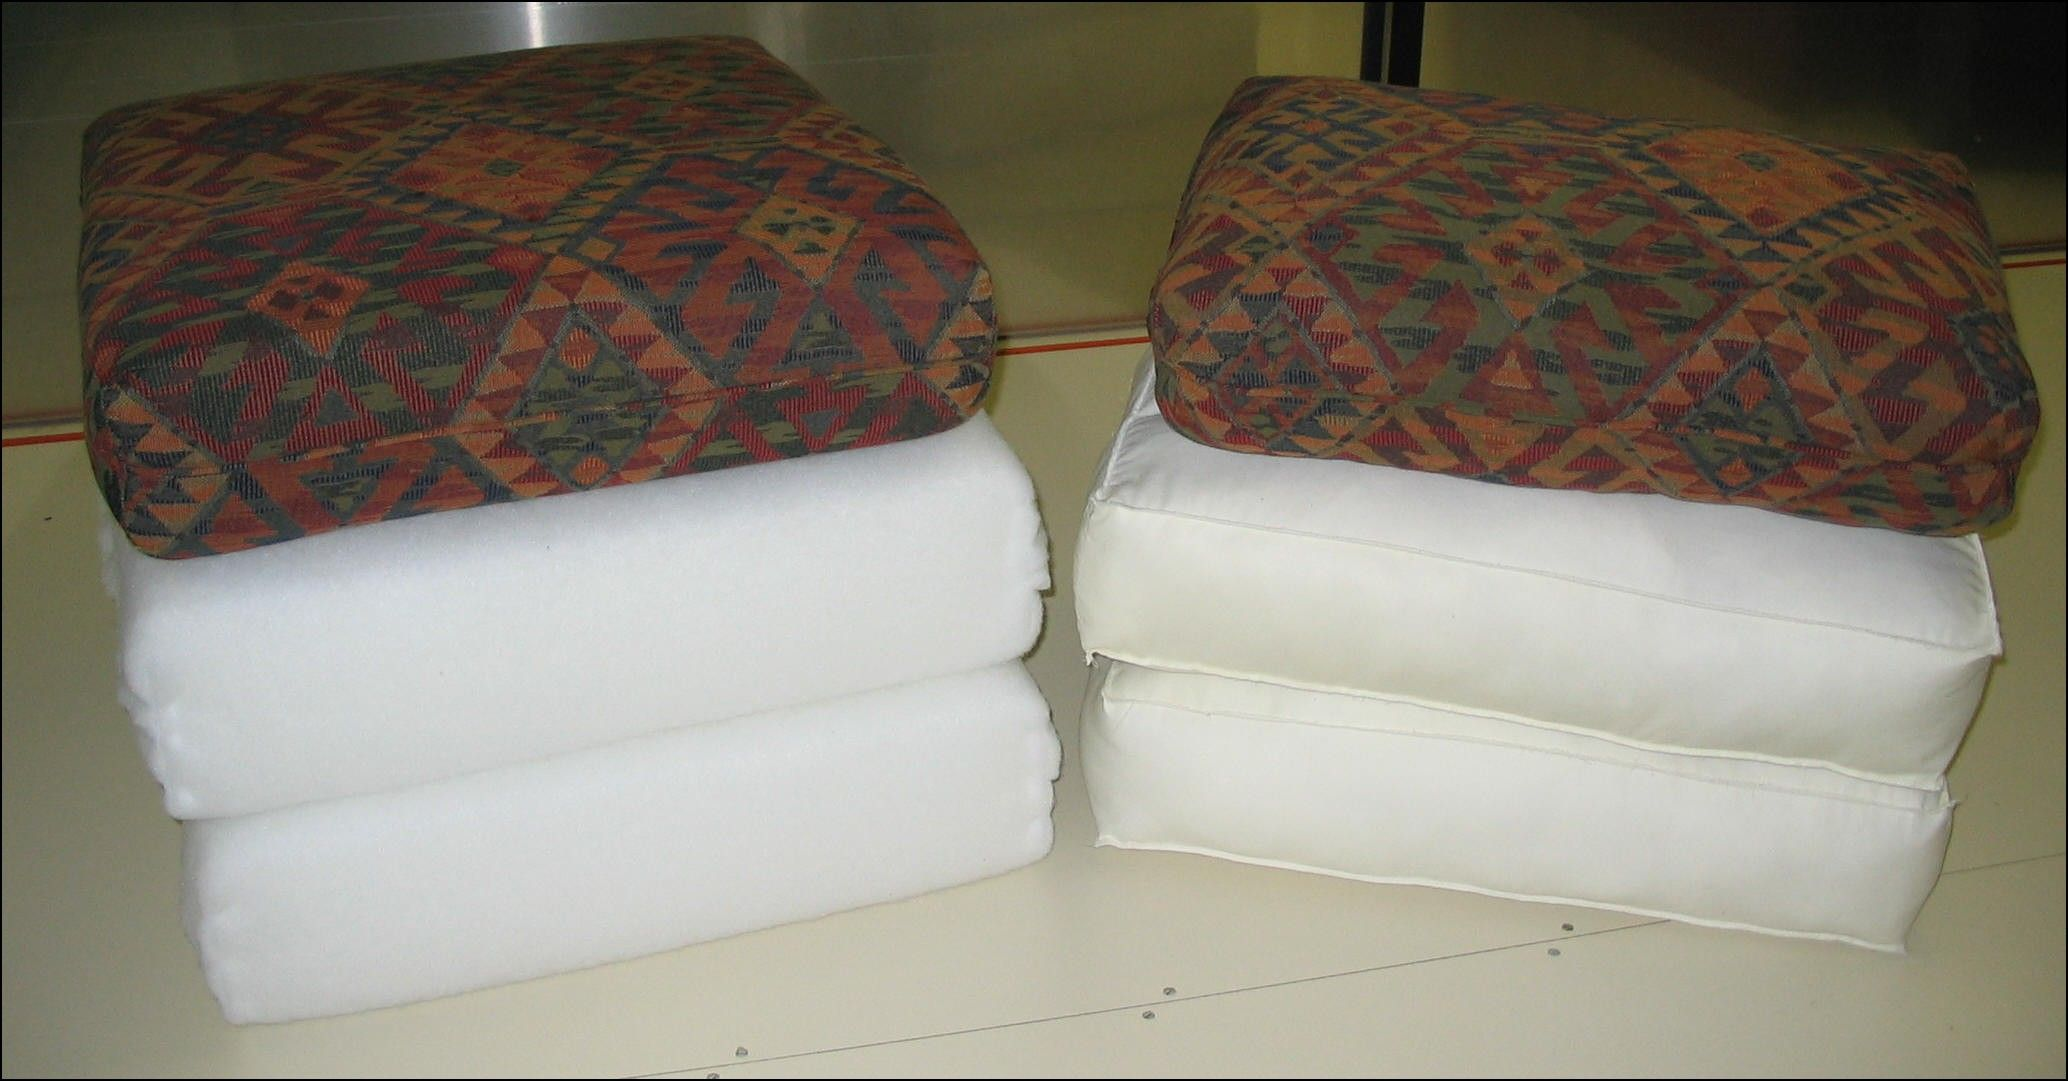 Delicieux Cut To Size Foam, Sofa Replacement, Cushion Replacement, Seat Cushions, Foam  Rubber